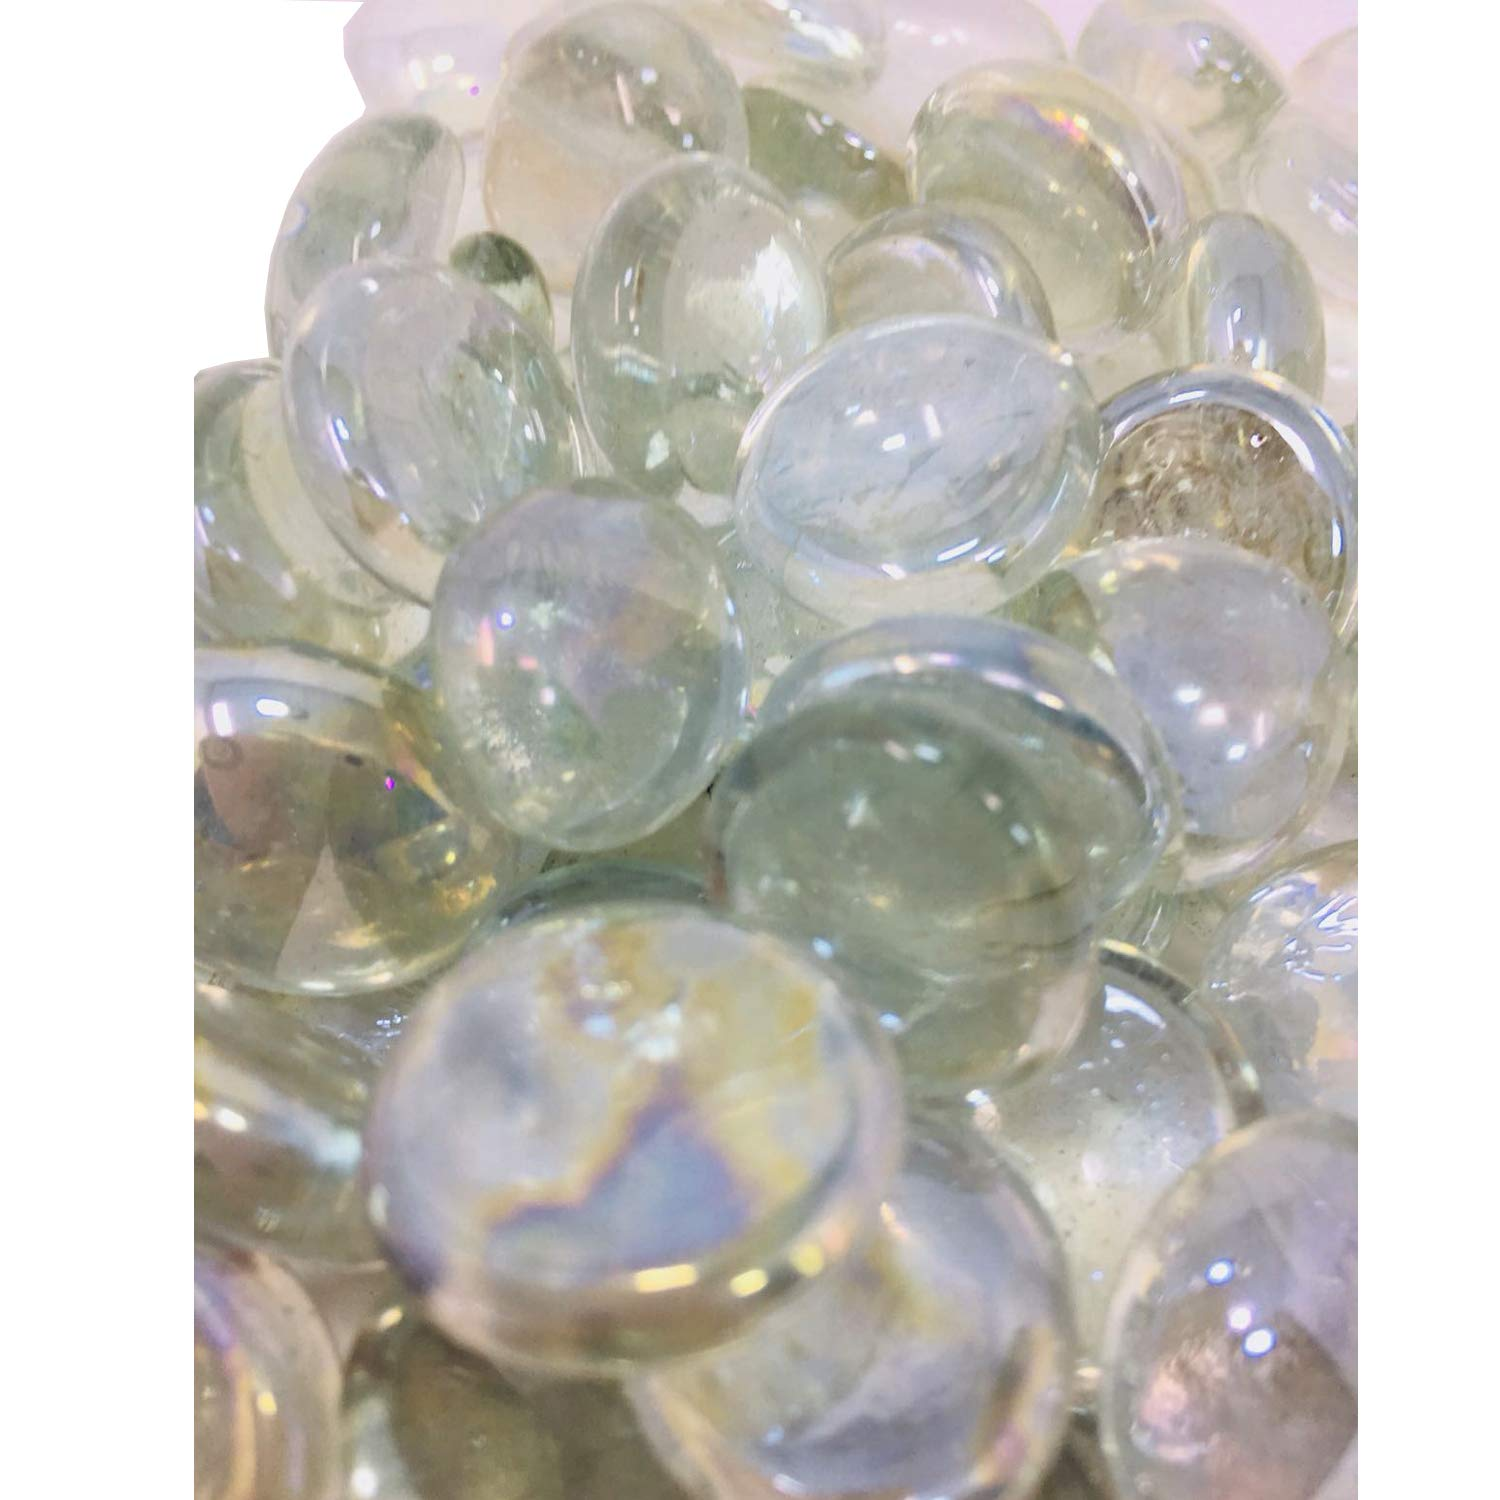 1Kg Decorative Round Clear Mixed Size Glass Pebbles/Nuggets..12-20mm by Generic: Amazon.es: Hogar